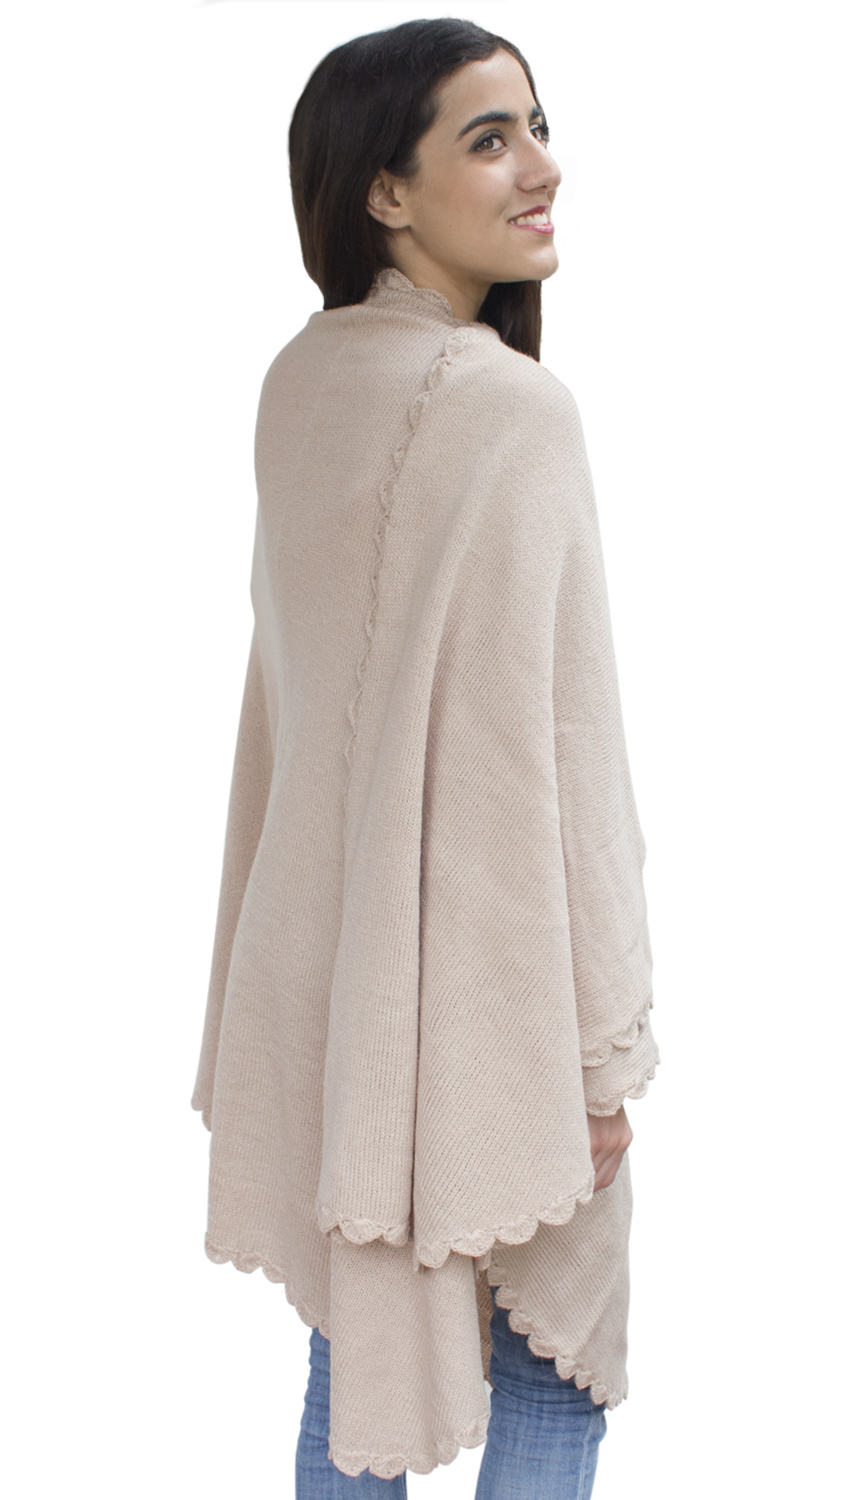 About Capes & Shawls Our Celtic Capes and Shawls are for the everyday woman who desires Irish designed and Celtic yet chic and fashionable wear. We offer a variety of yarns from merino wool to cashmere to blended.